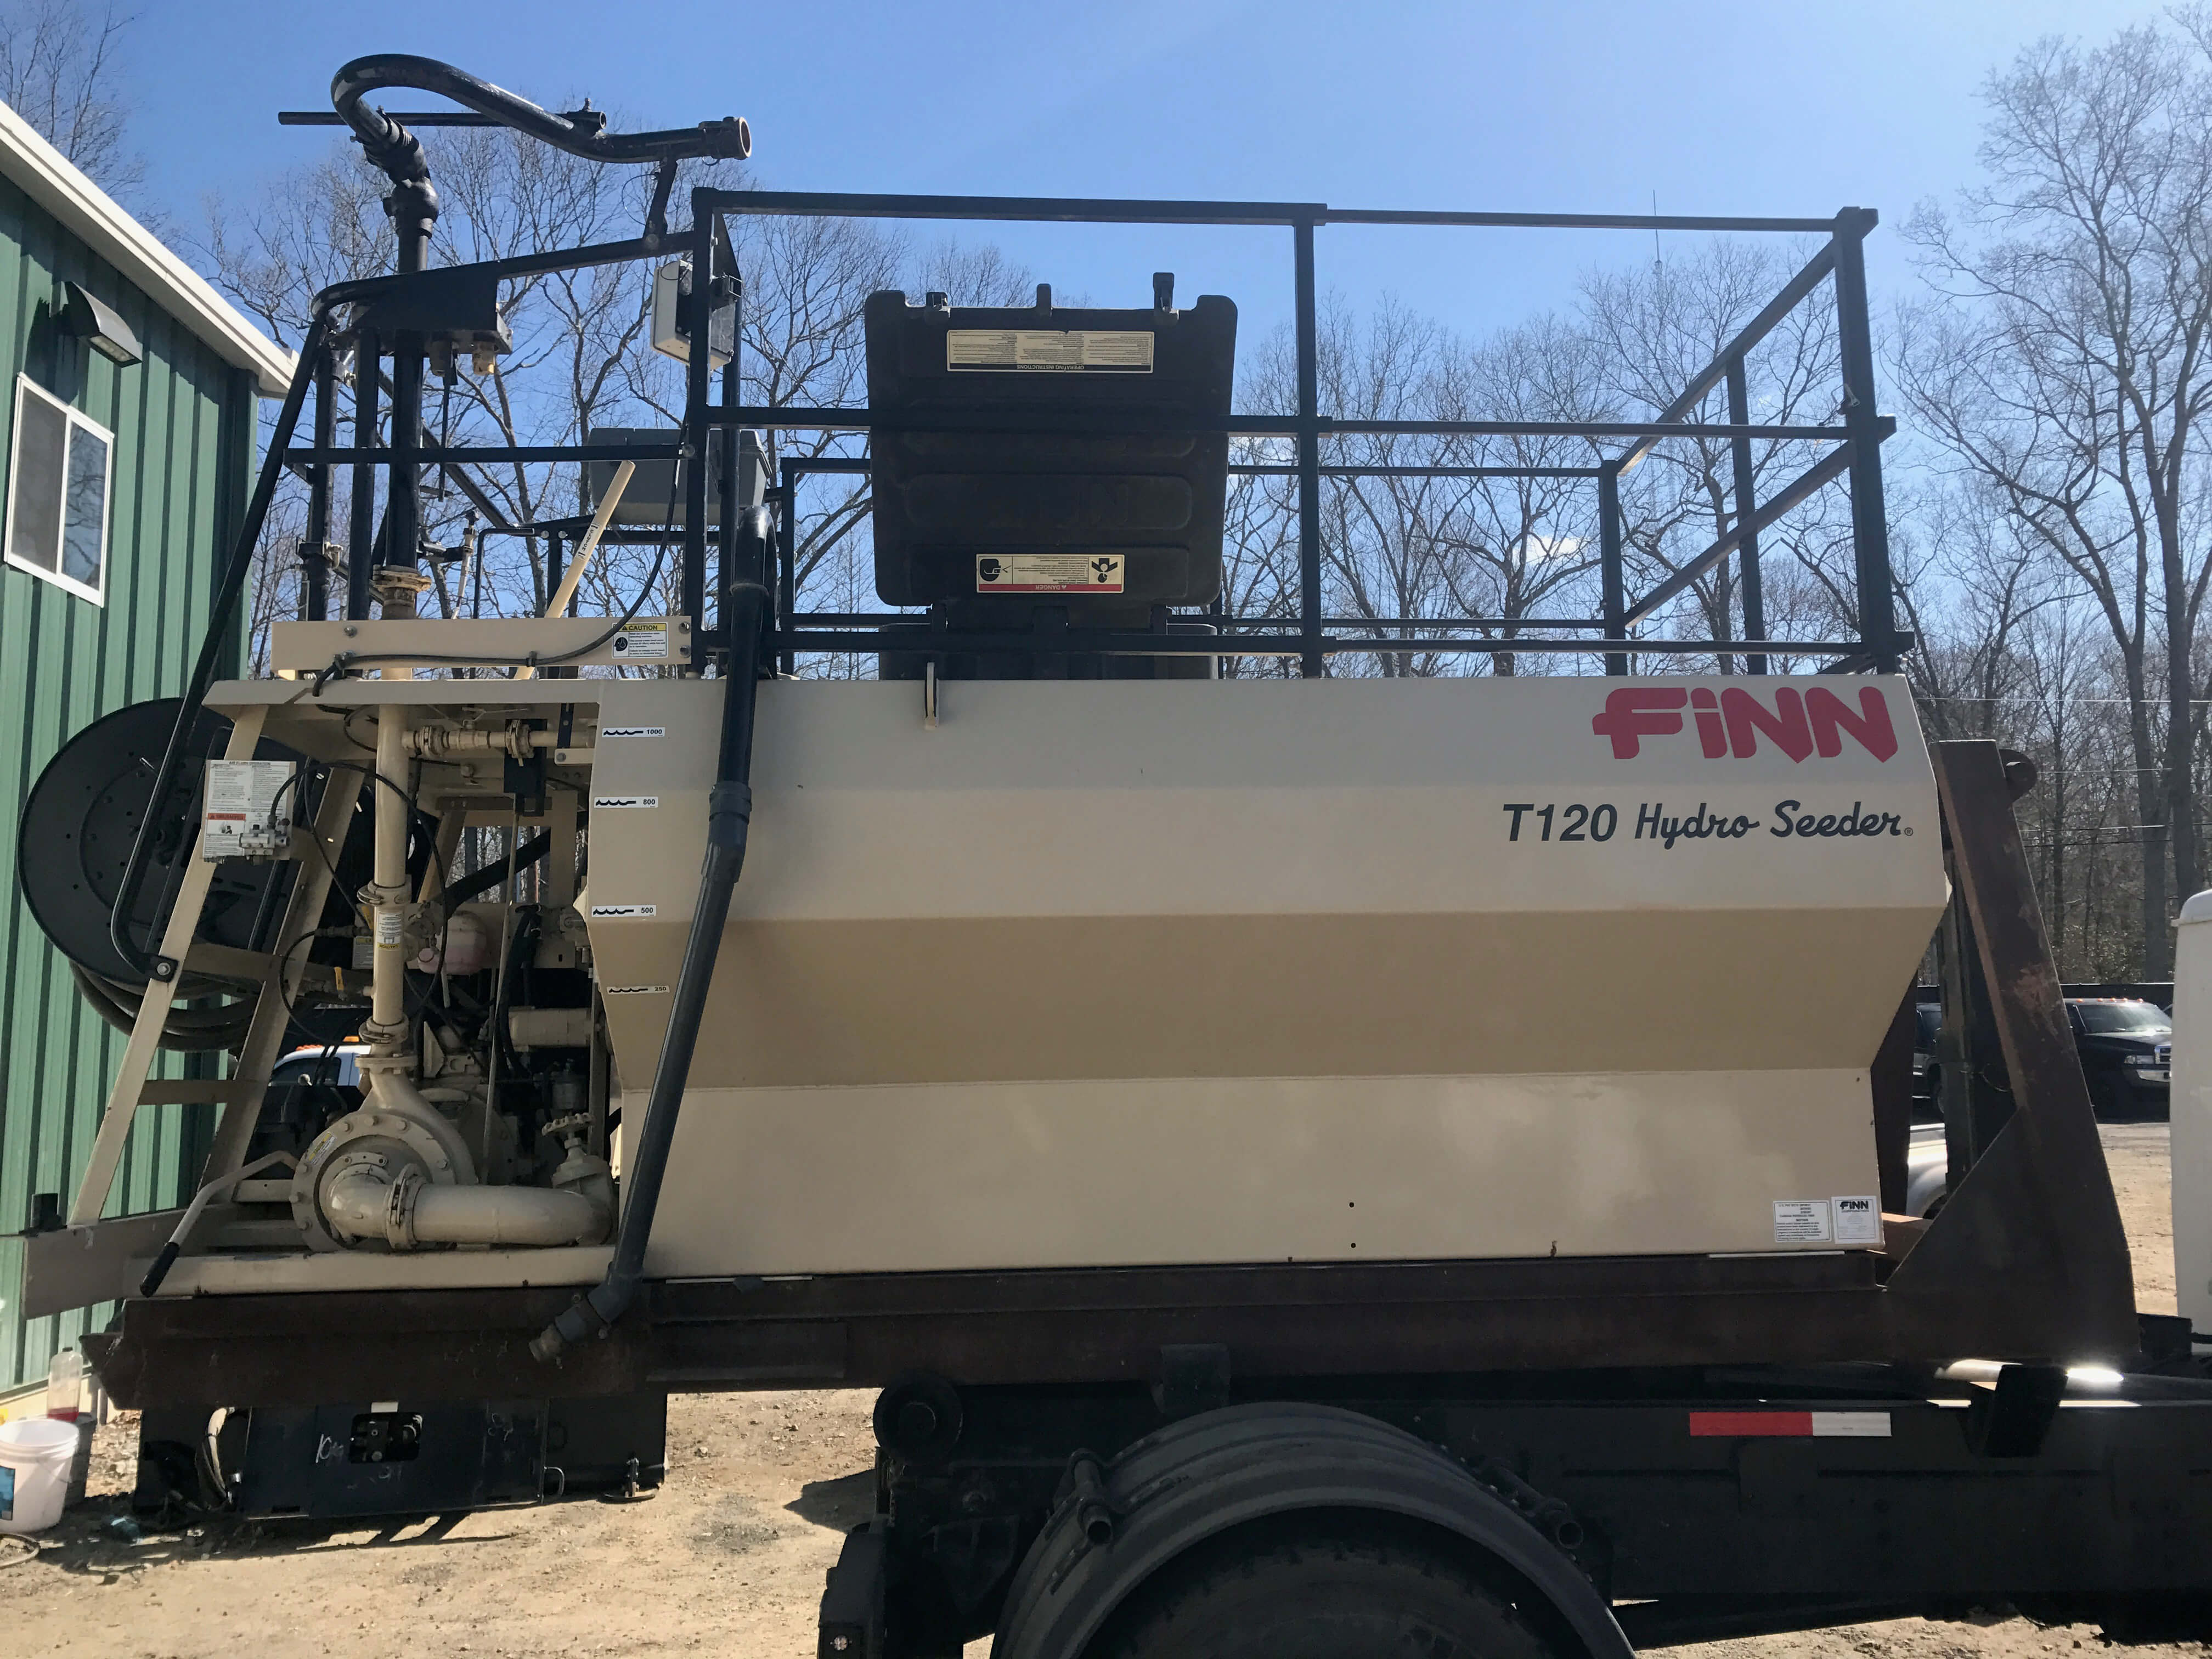 2444_2441-14f0fcb7-e596-4615-959d-293495892fbf Consignment HydroSeeders & Straw Blowers